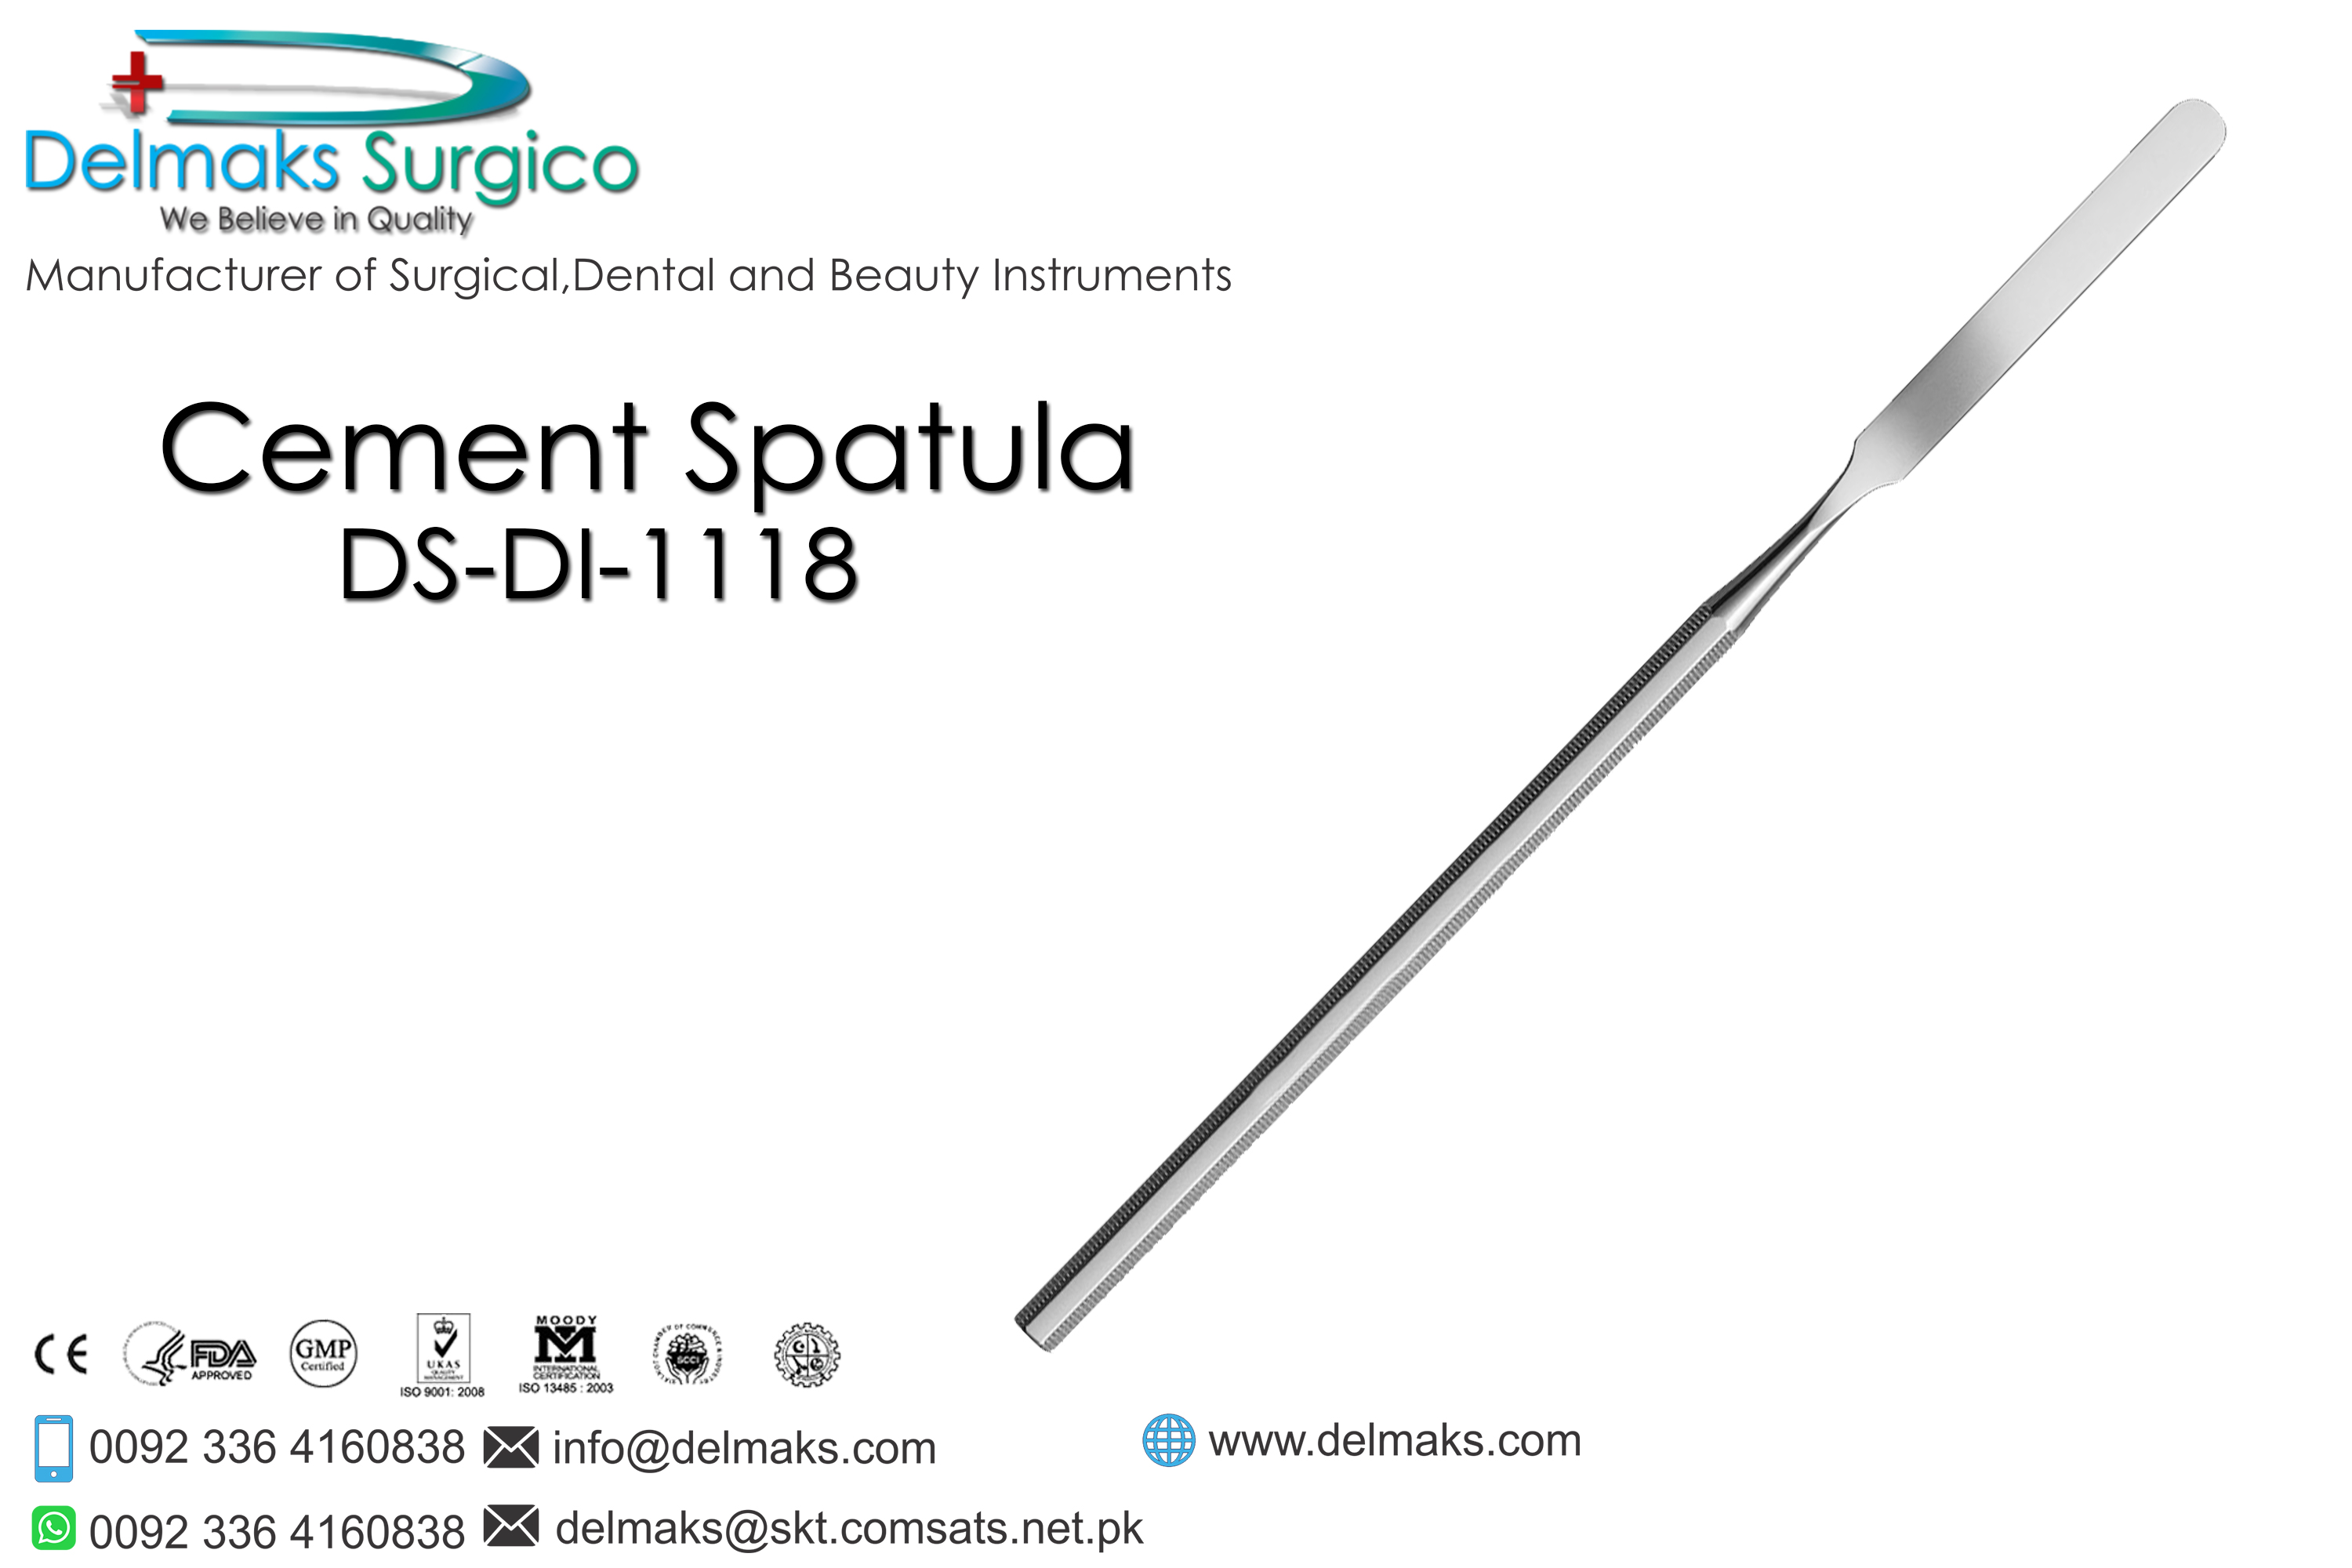 Cement Spatula-Crown And Bridge(Fixed Prosthodontics) Instruments-Dental Instruments-Delmaks Surgico